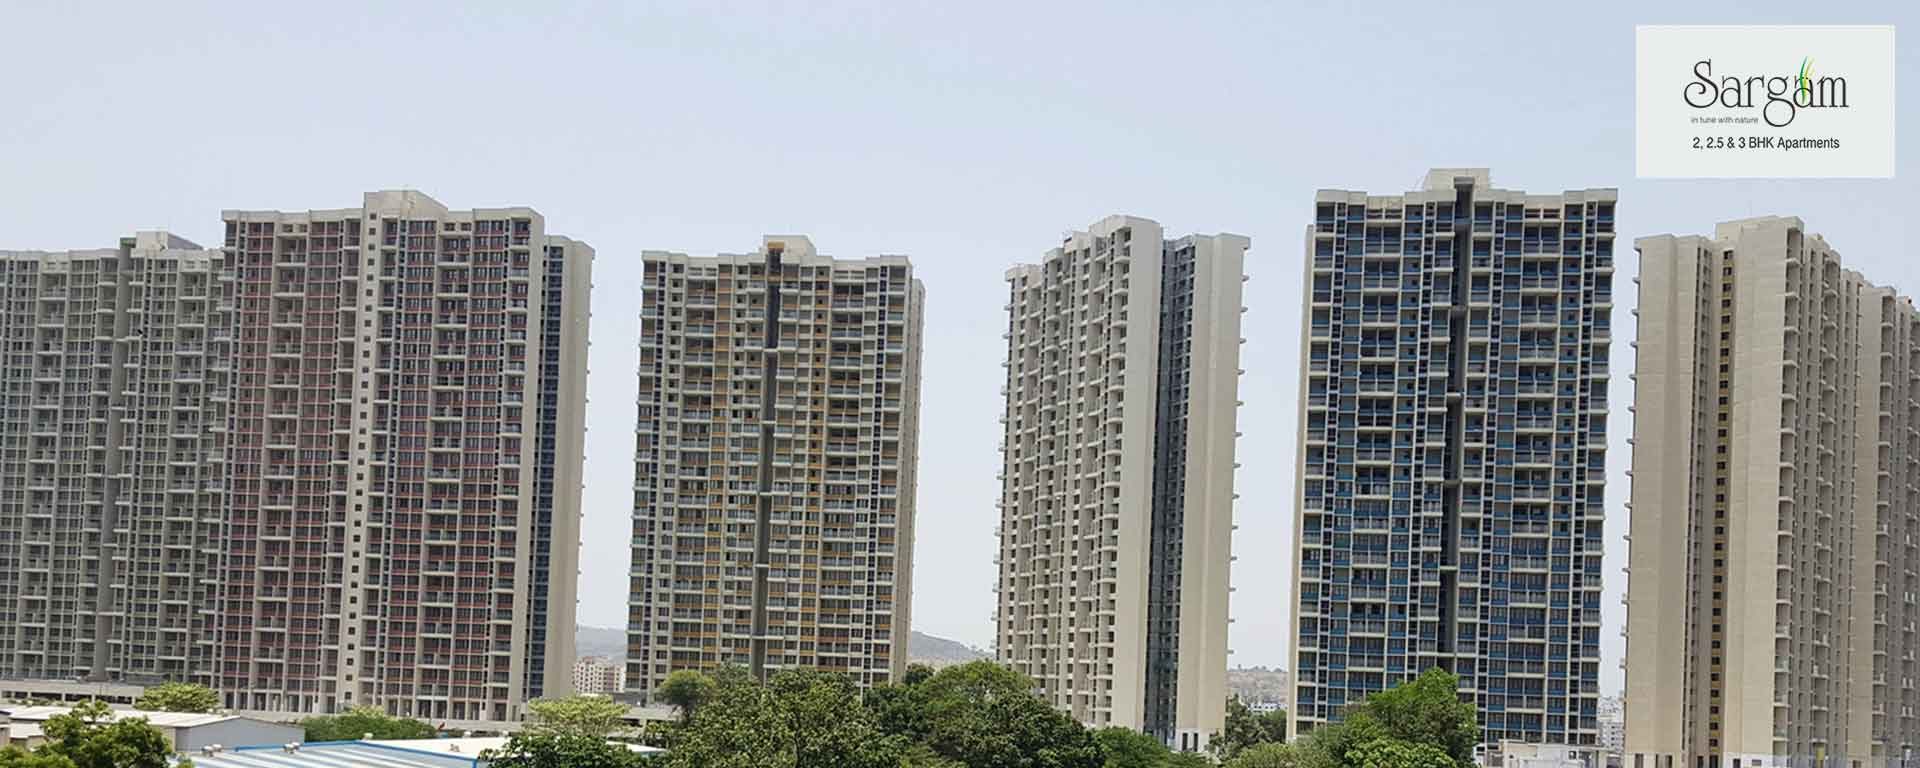 Gated community 2, 2.5&3 bhk apartments in pune